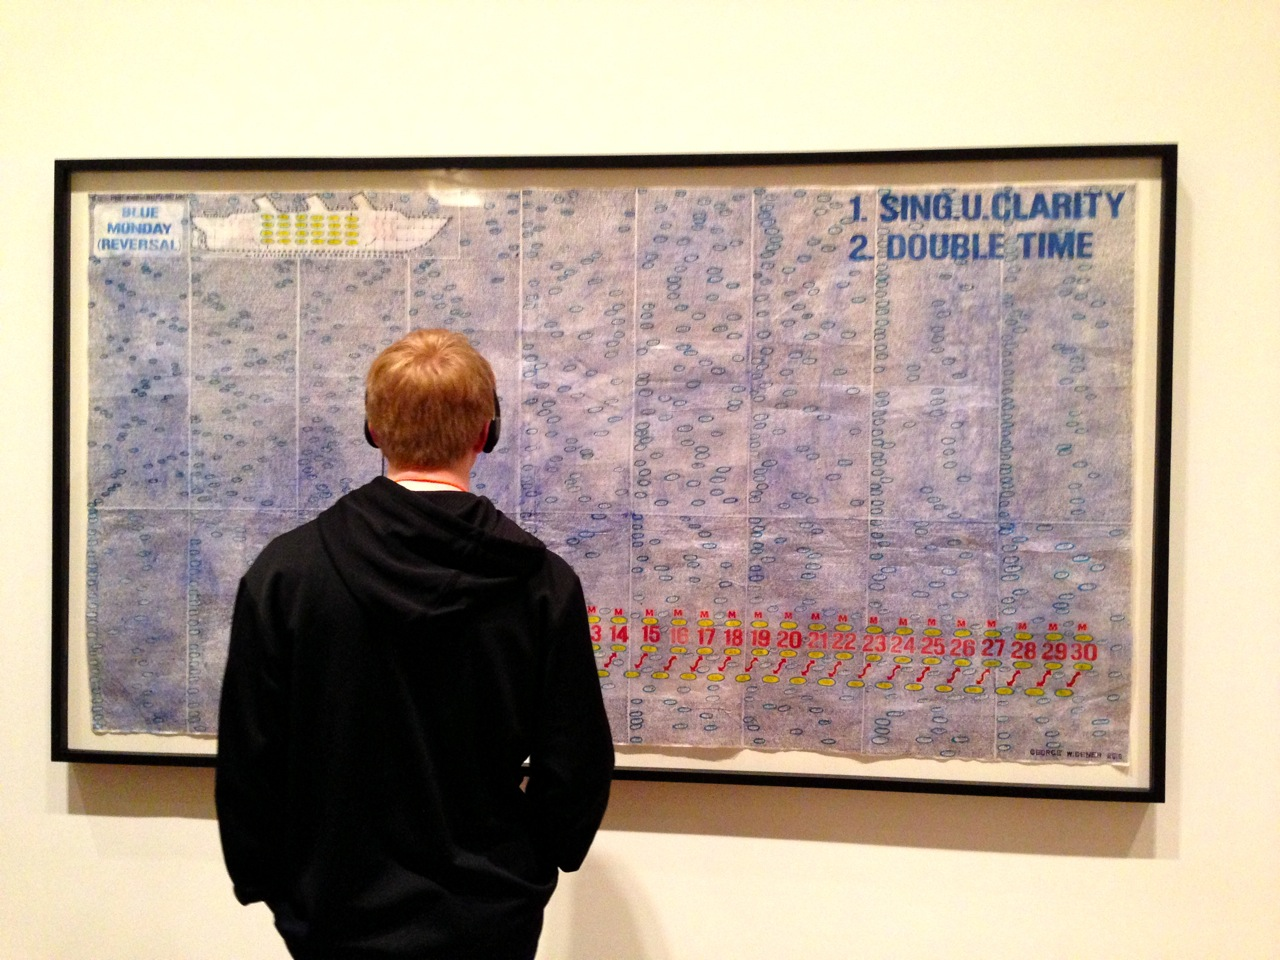 A museum visitor studies George Widener's Blue Monday Reversal, which is comprised of ?? dates in ballpoint pen and ink. (Photo by Michelle Aldredge from ??)